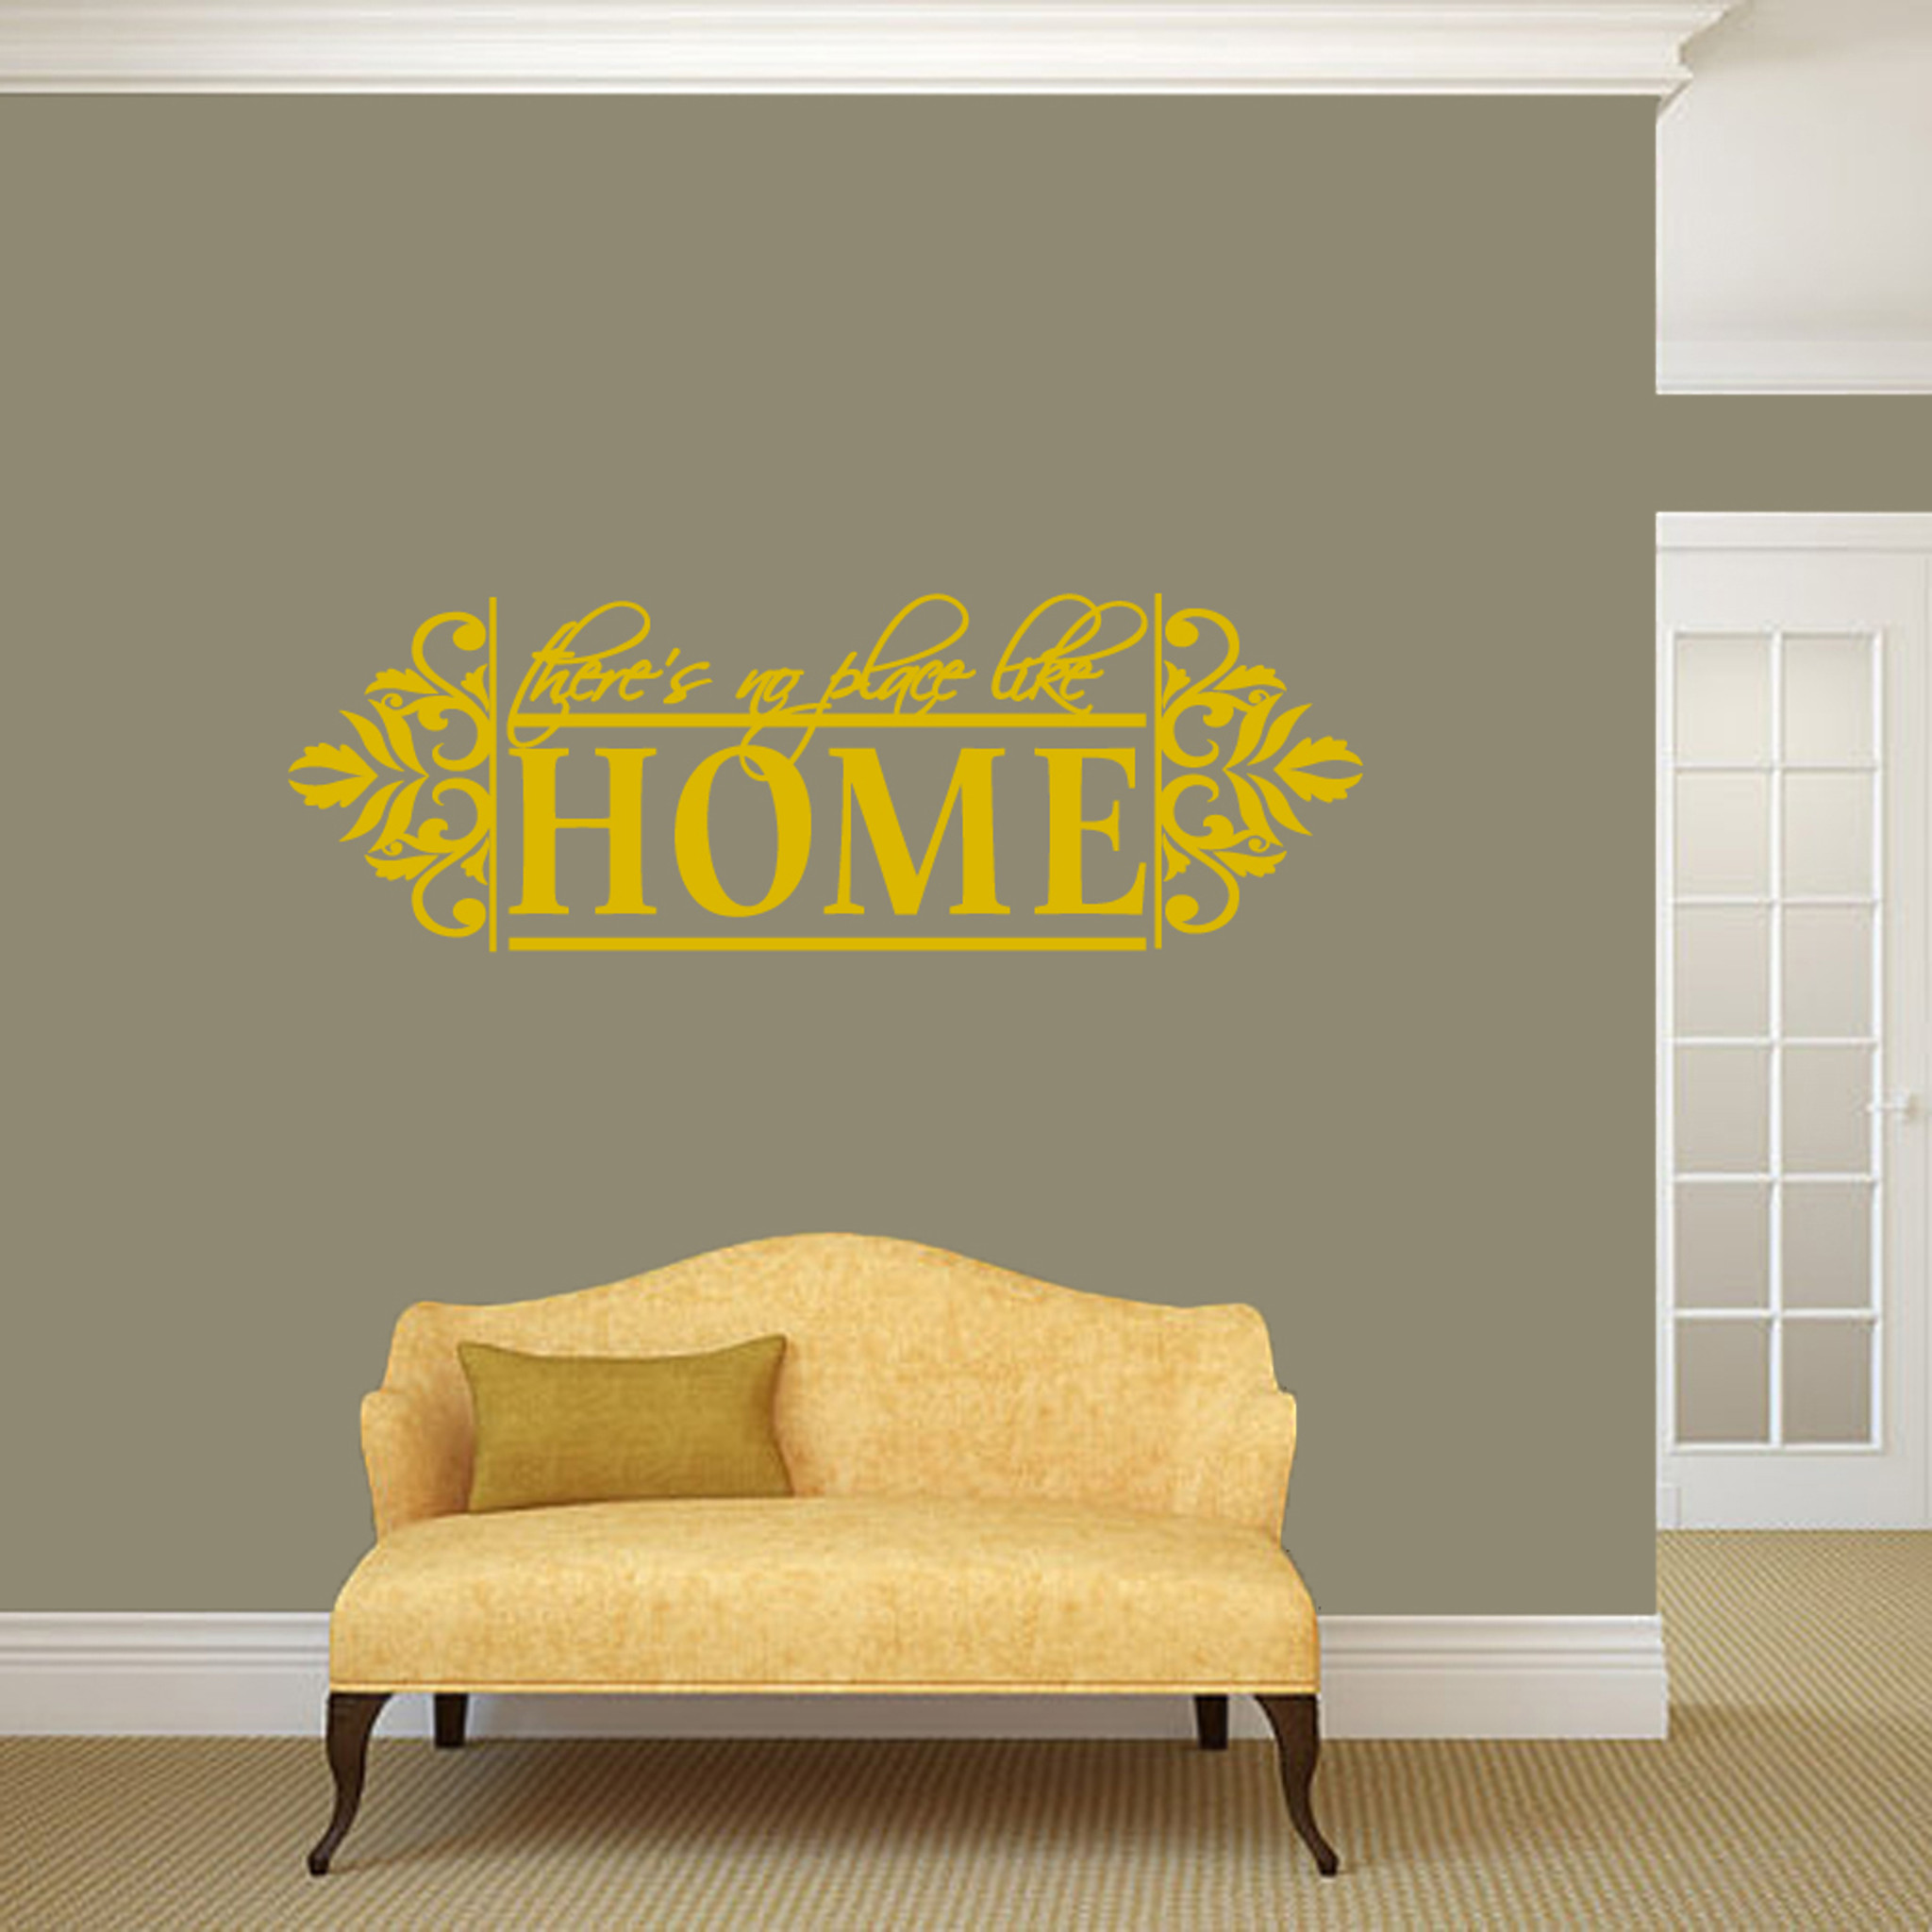 No Place Like Home Wall Decals Home Décor Wall Decals